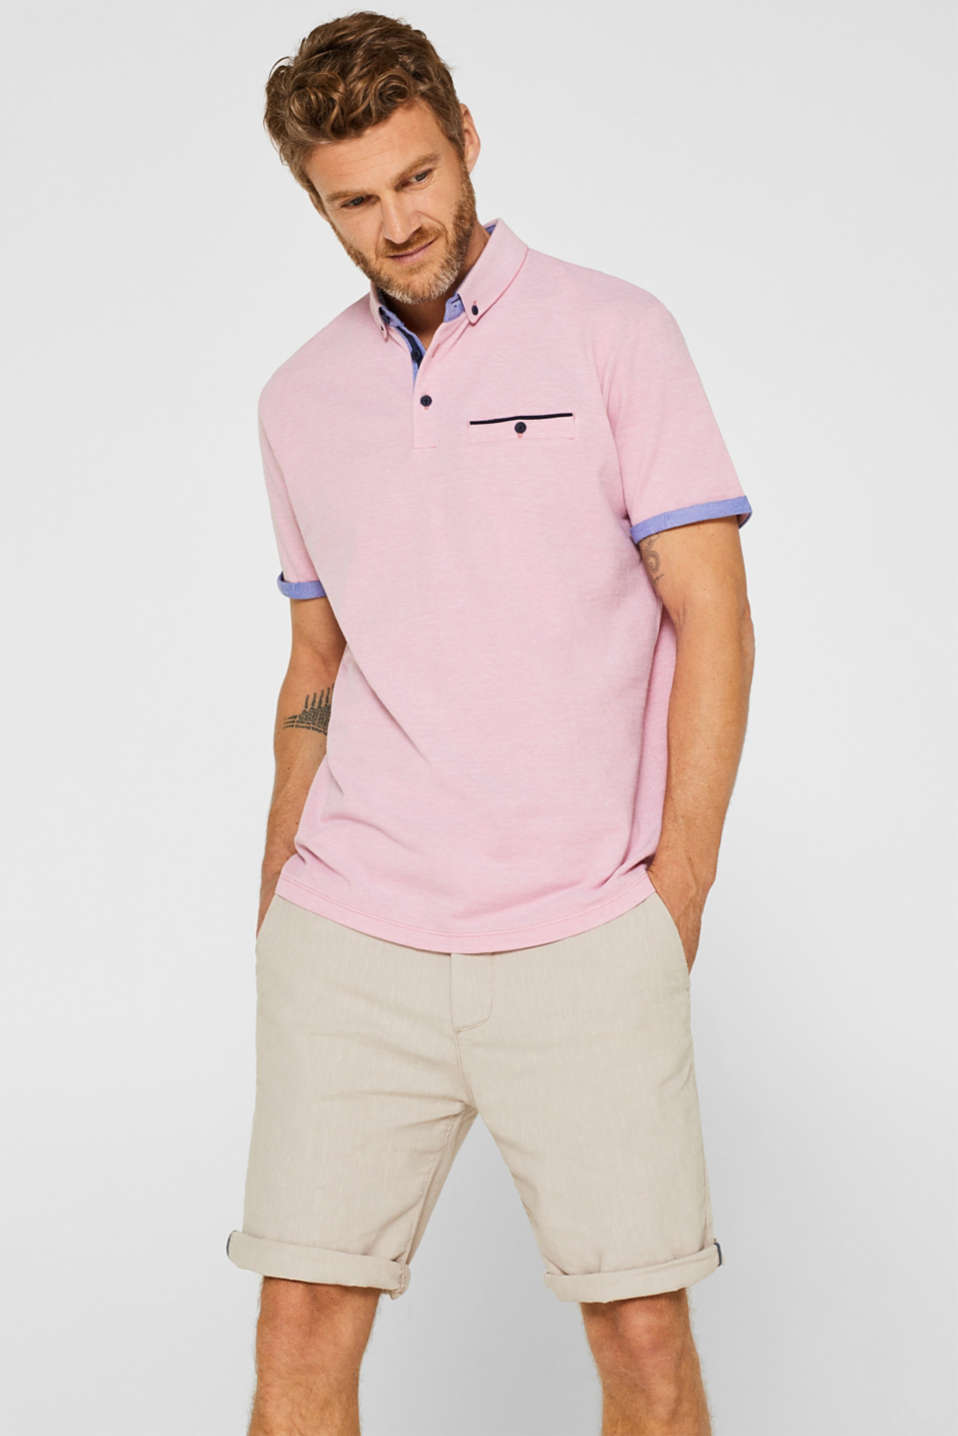 Esprit - Piqué polo shirt in 100% cotton